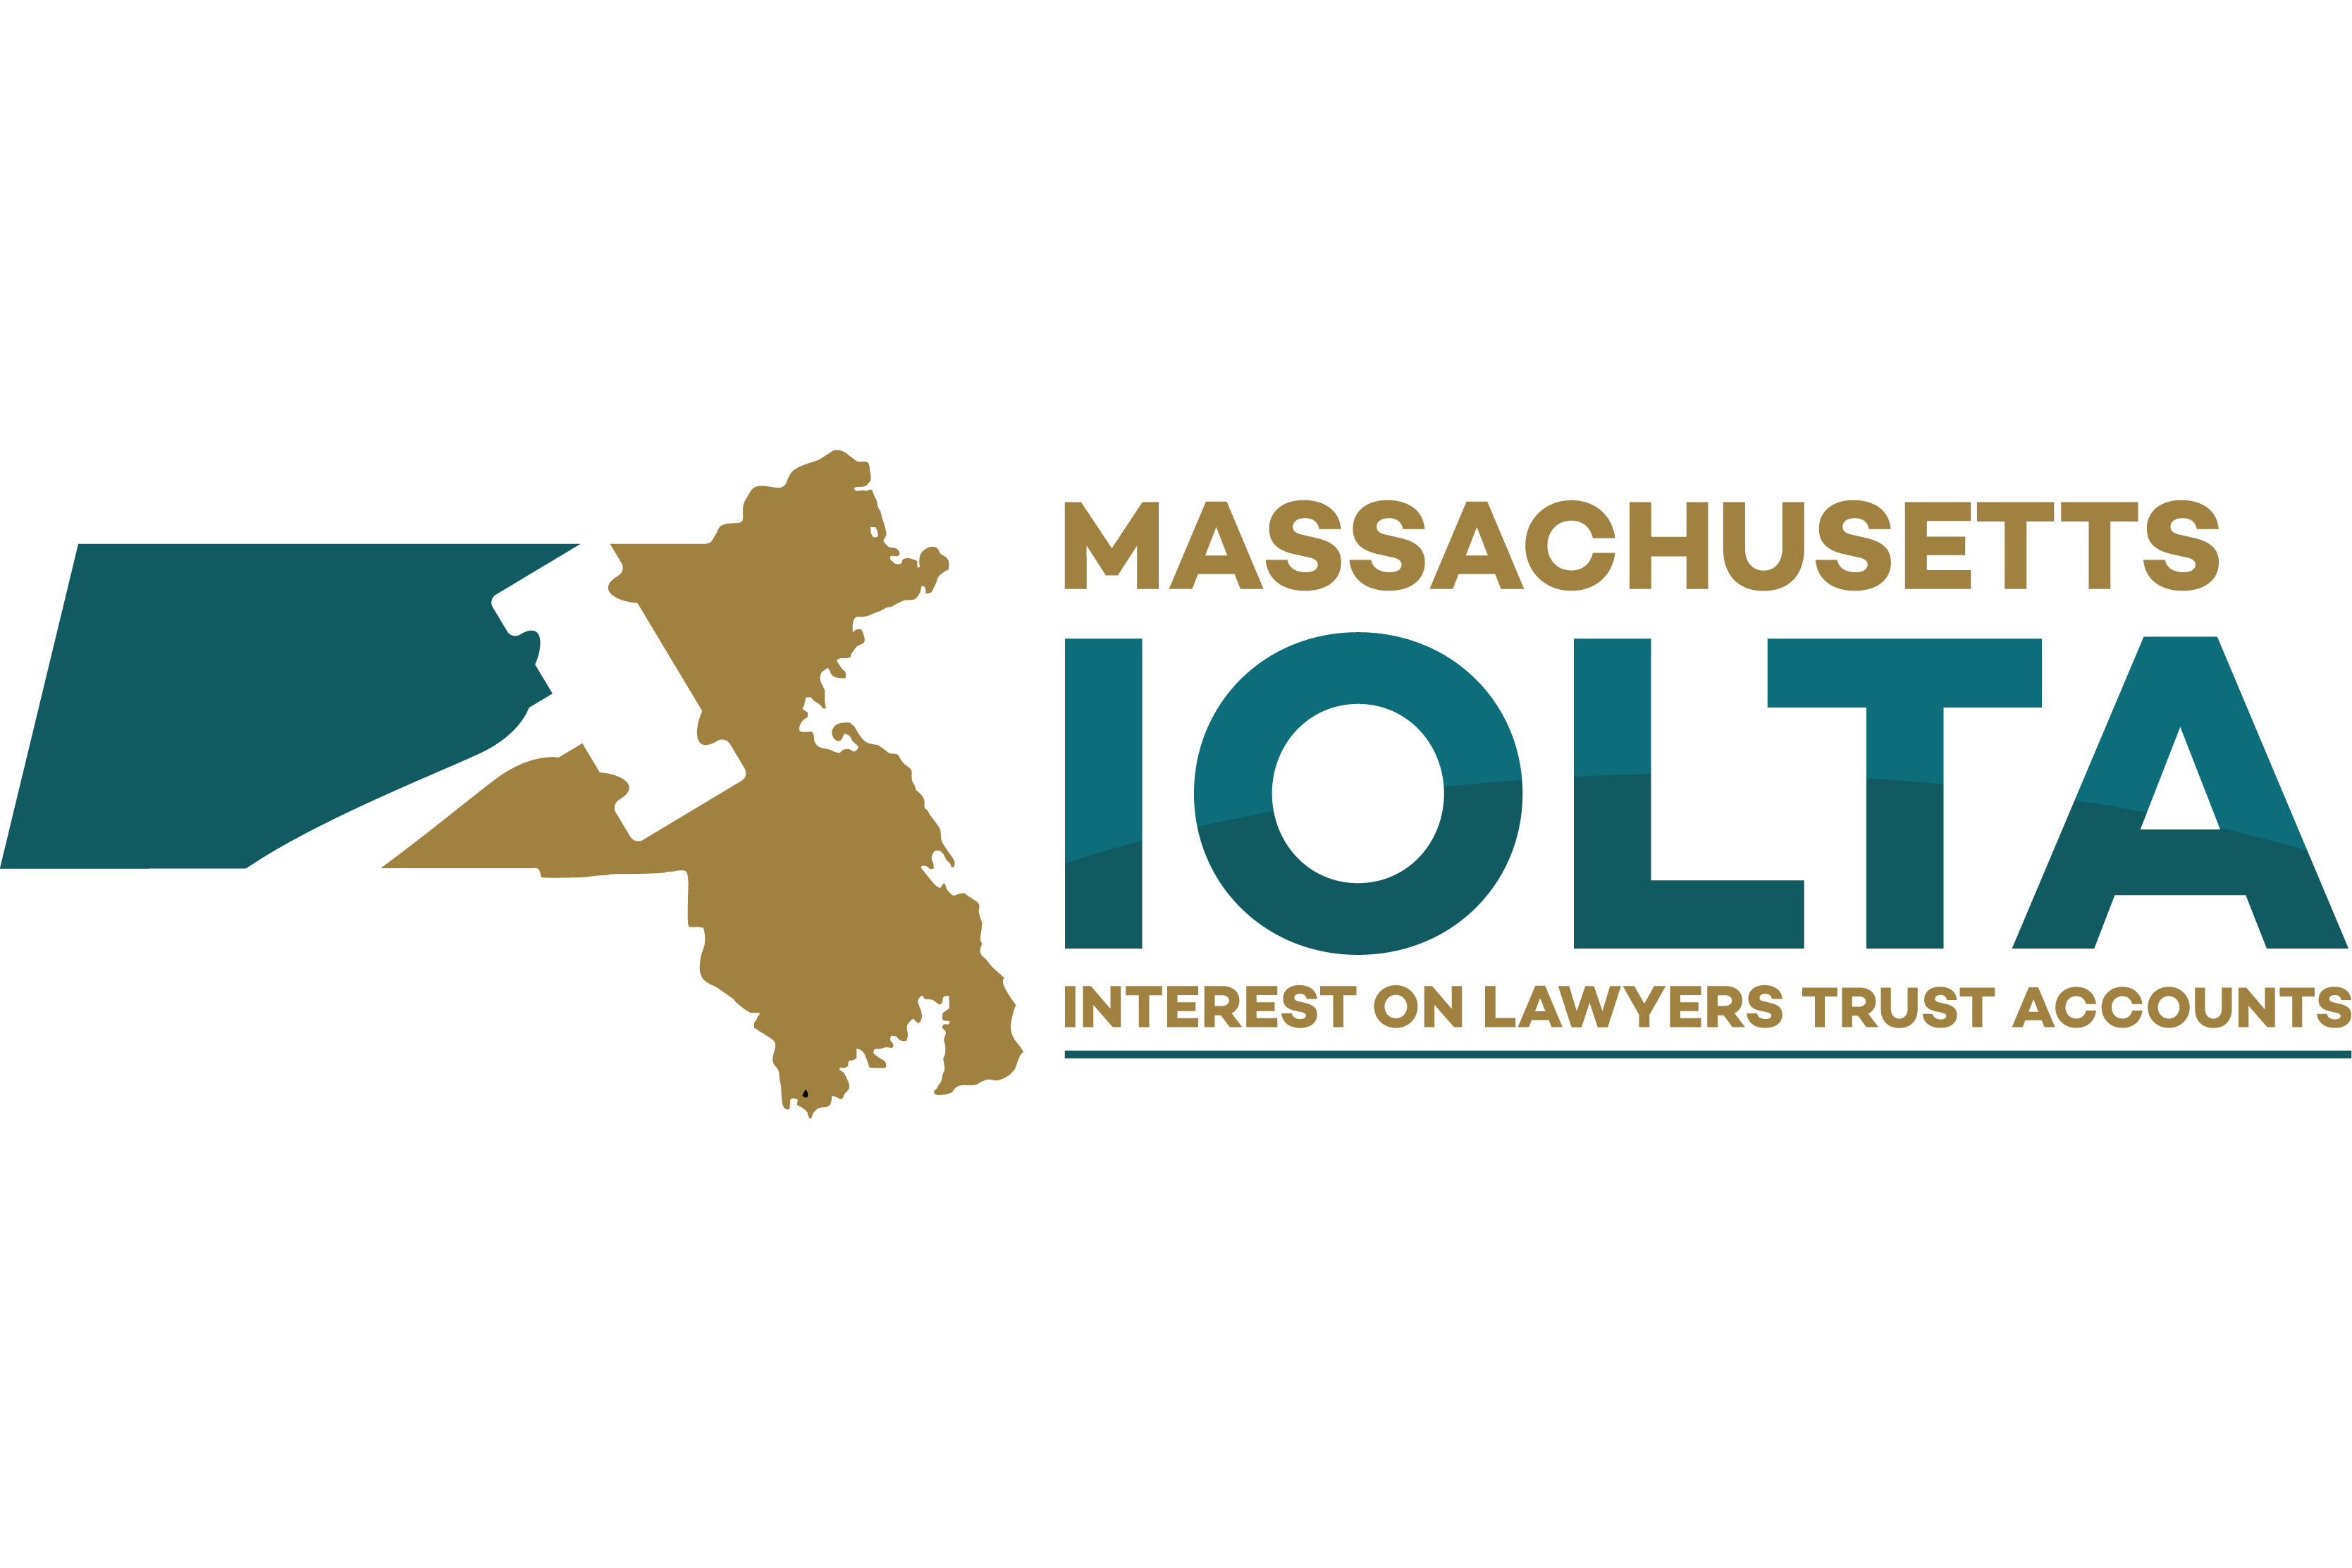 https://iolta.org/wp-content/uploads/IOLTA-Massachusetts_Final.png